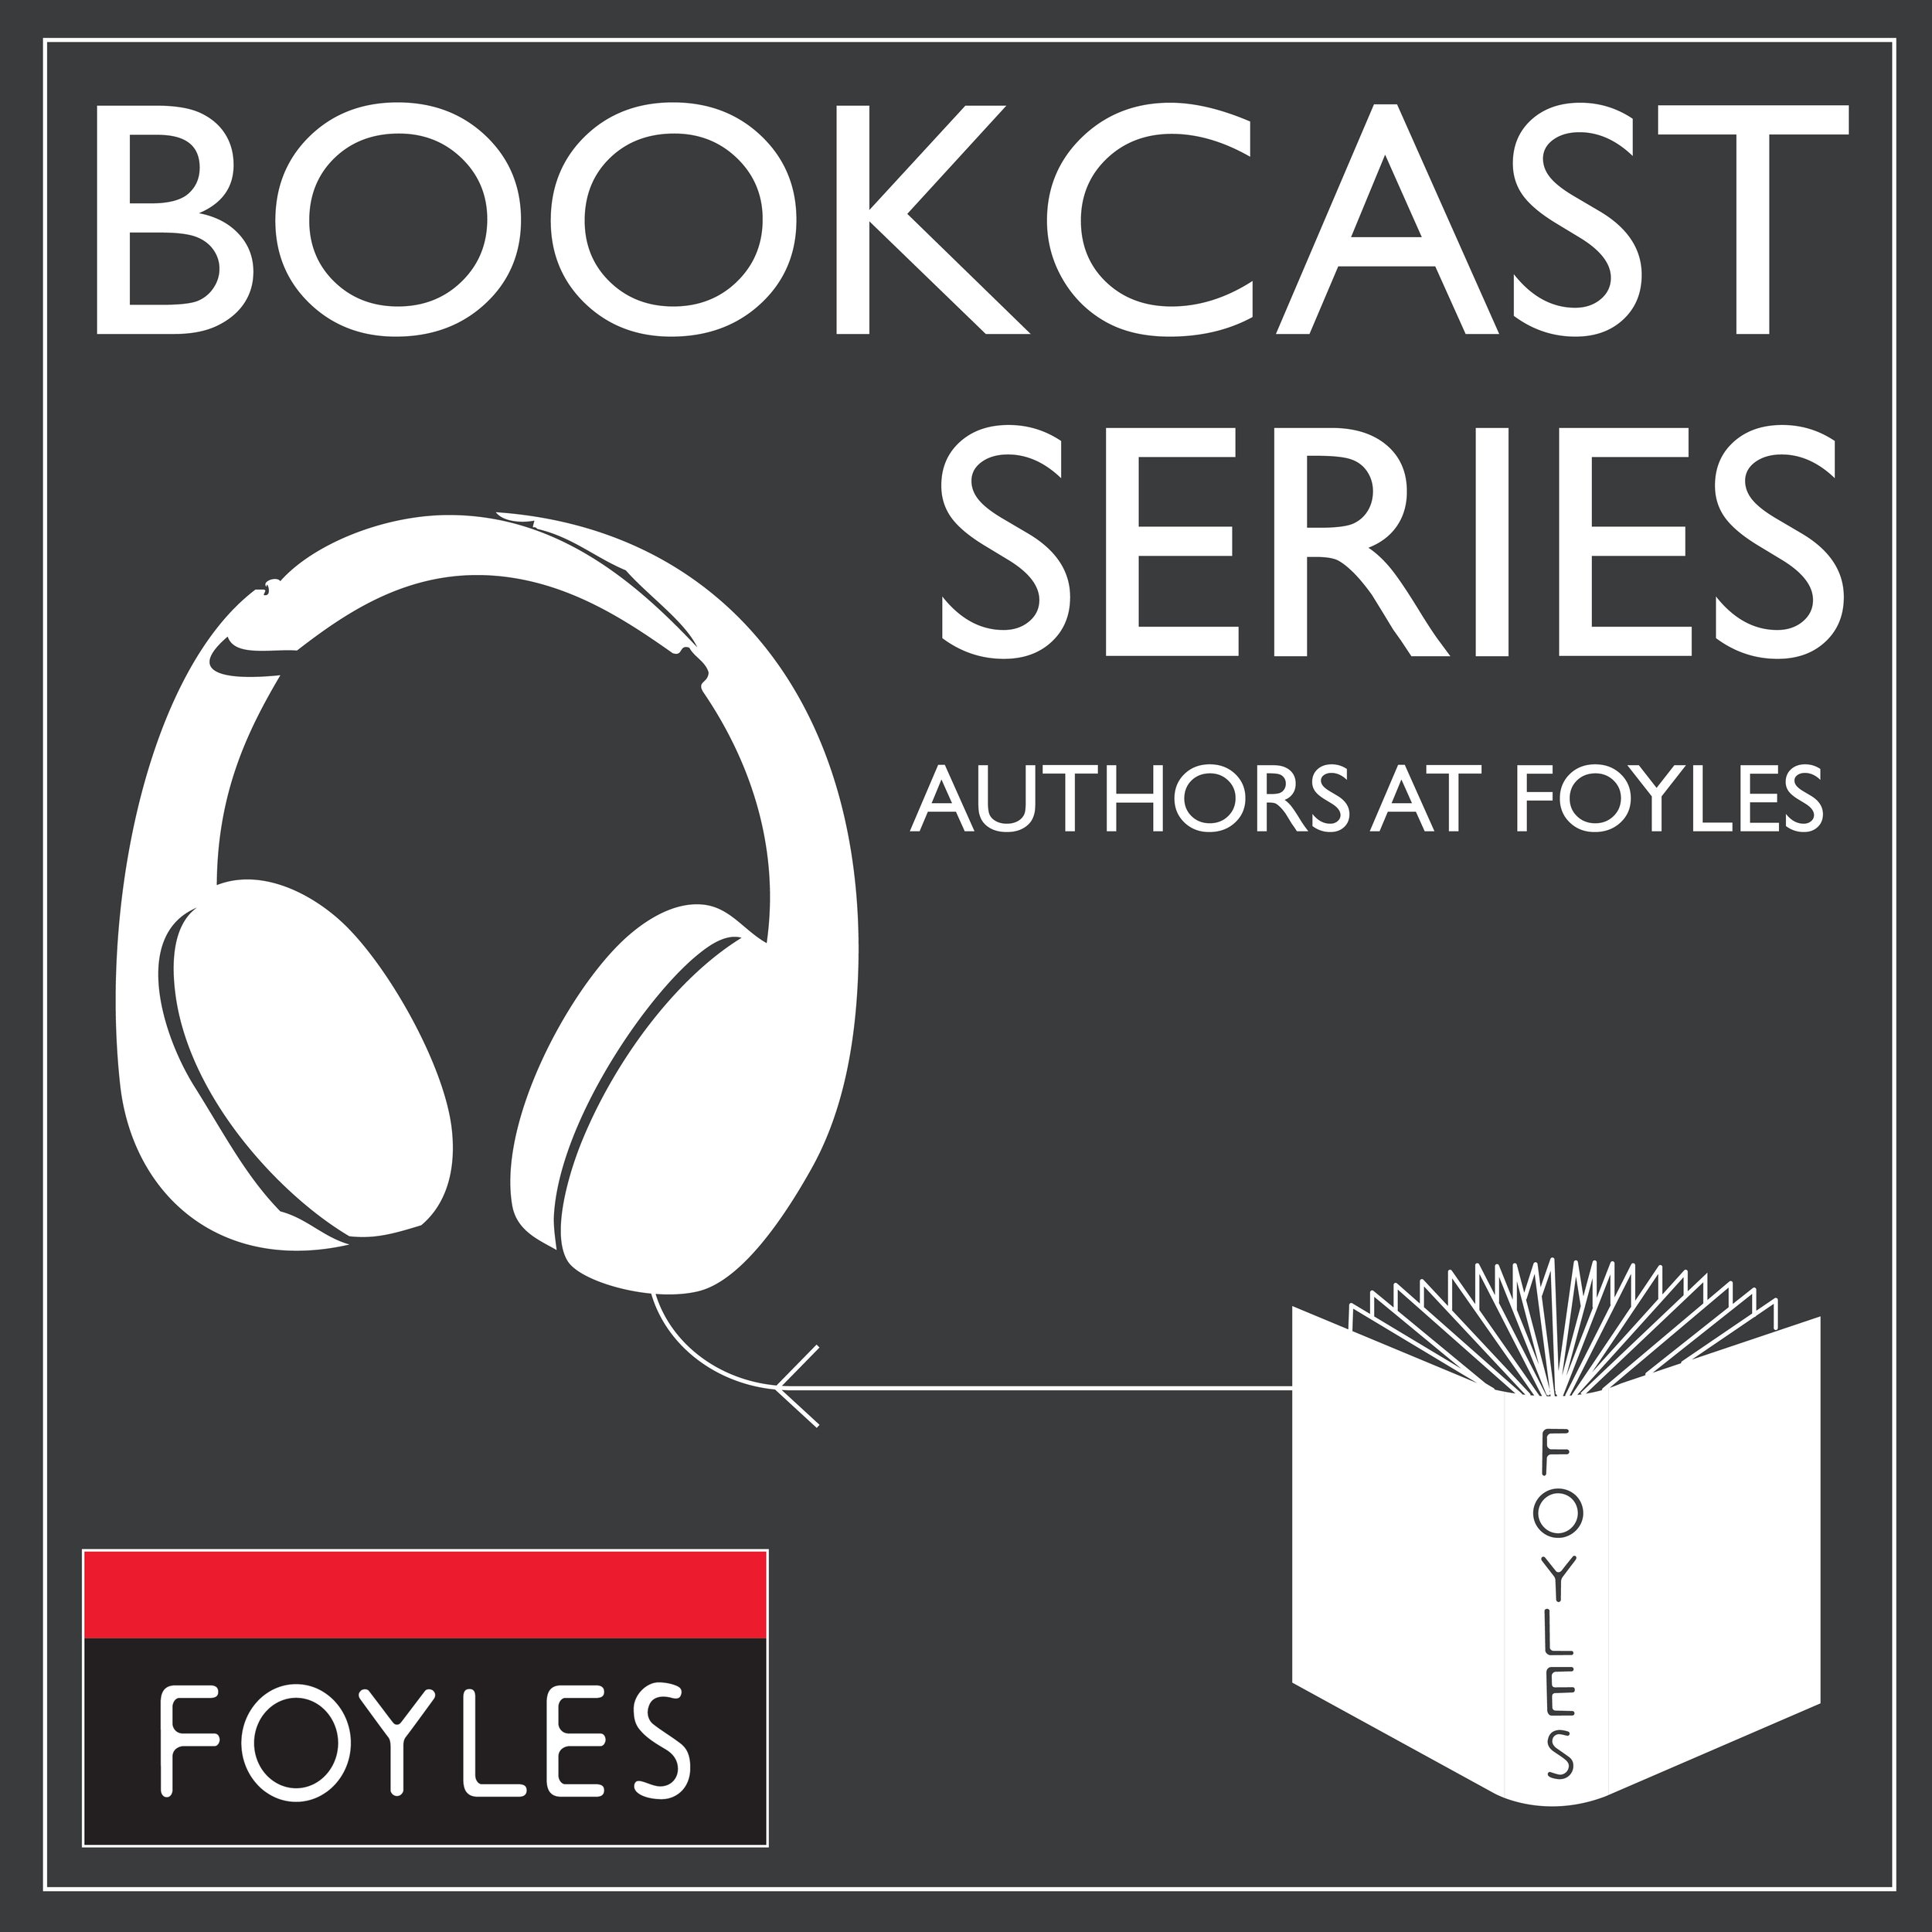 bookcasts-with-logo-1400x1400-smaller.jpg